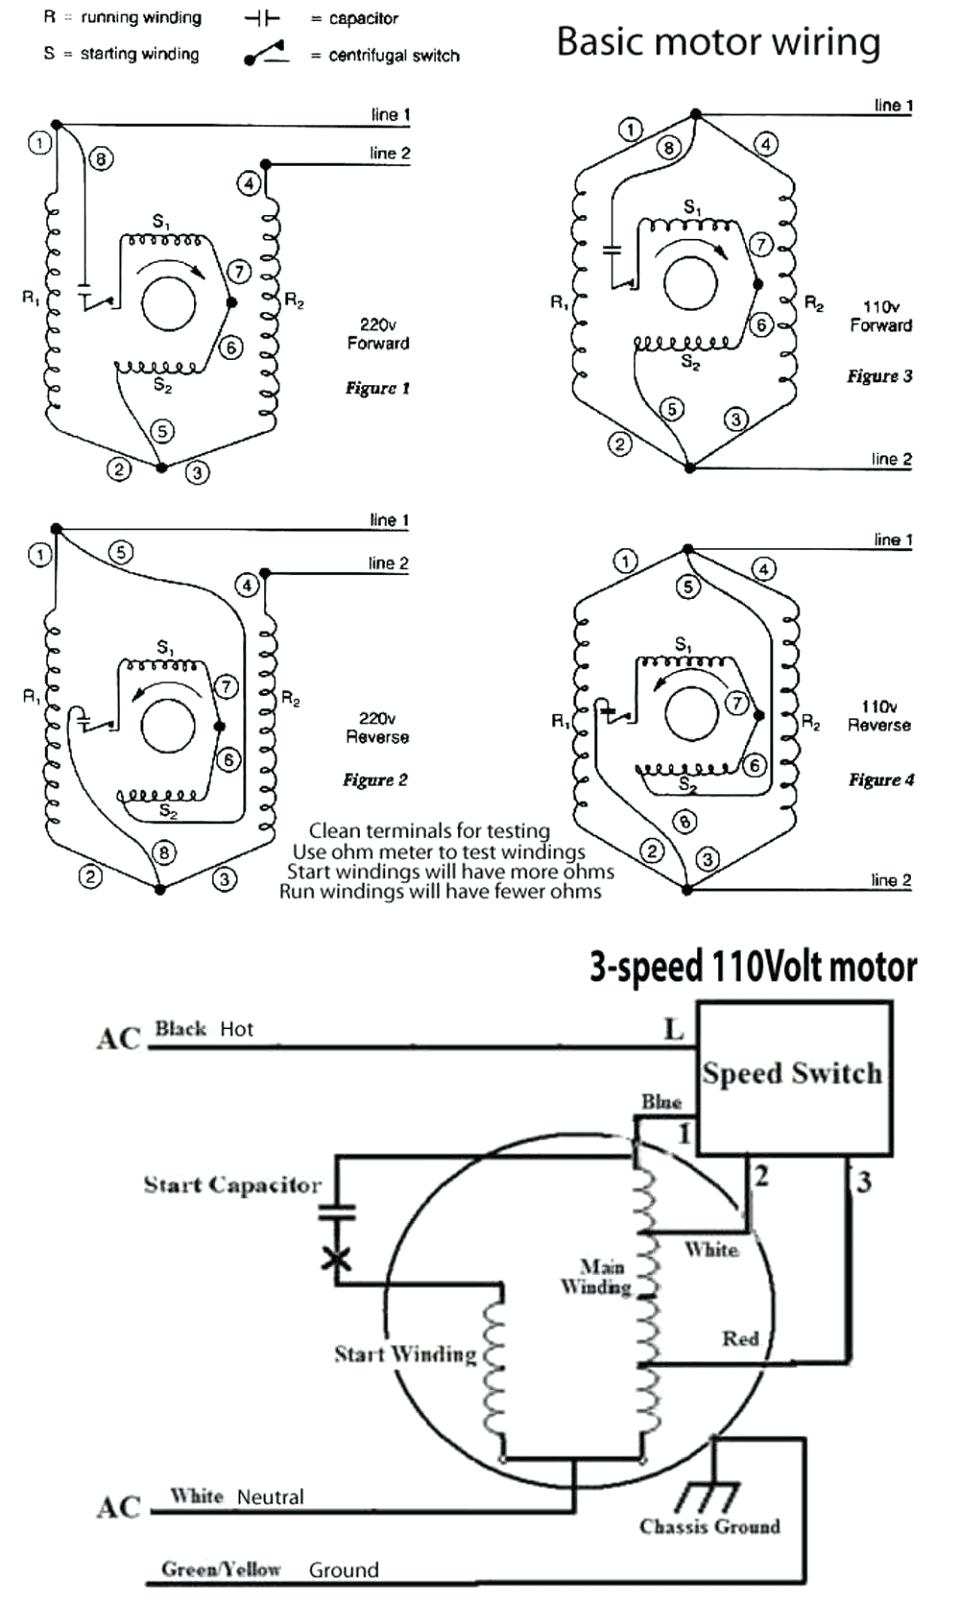 pentair pump wiring diagram pentair superflo pump wiring diagram collection 220v pool pump wiring diagram #13